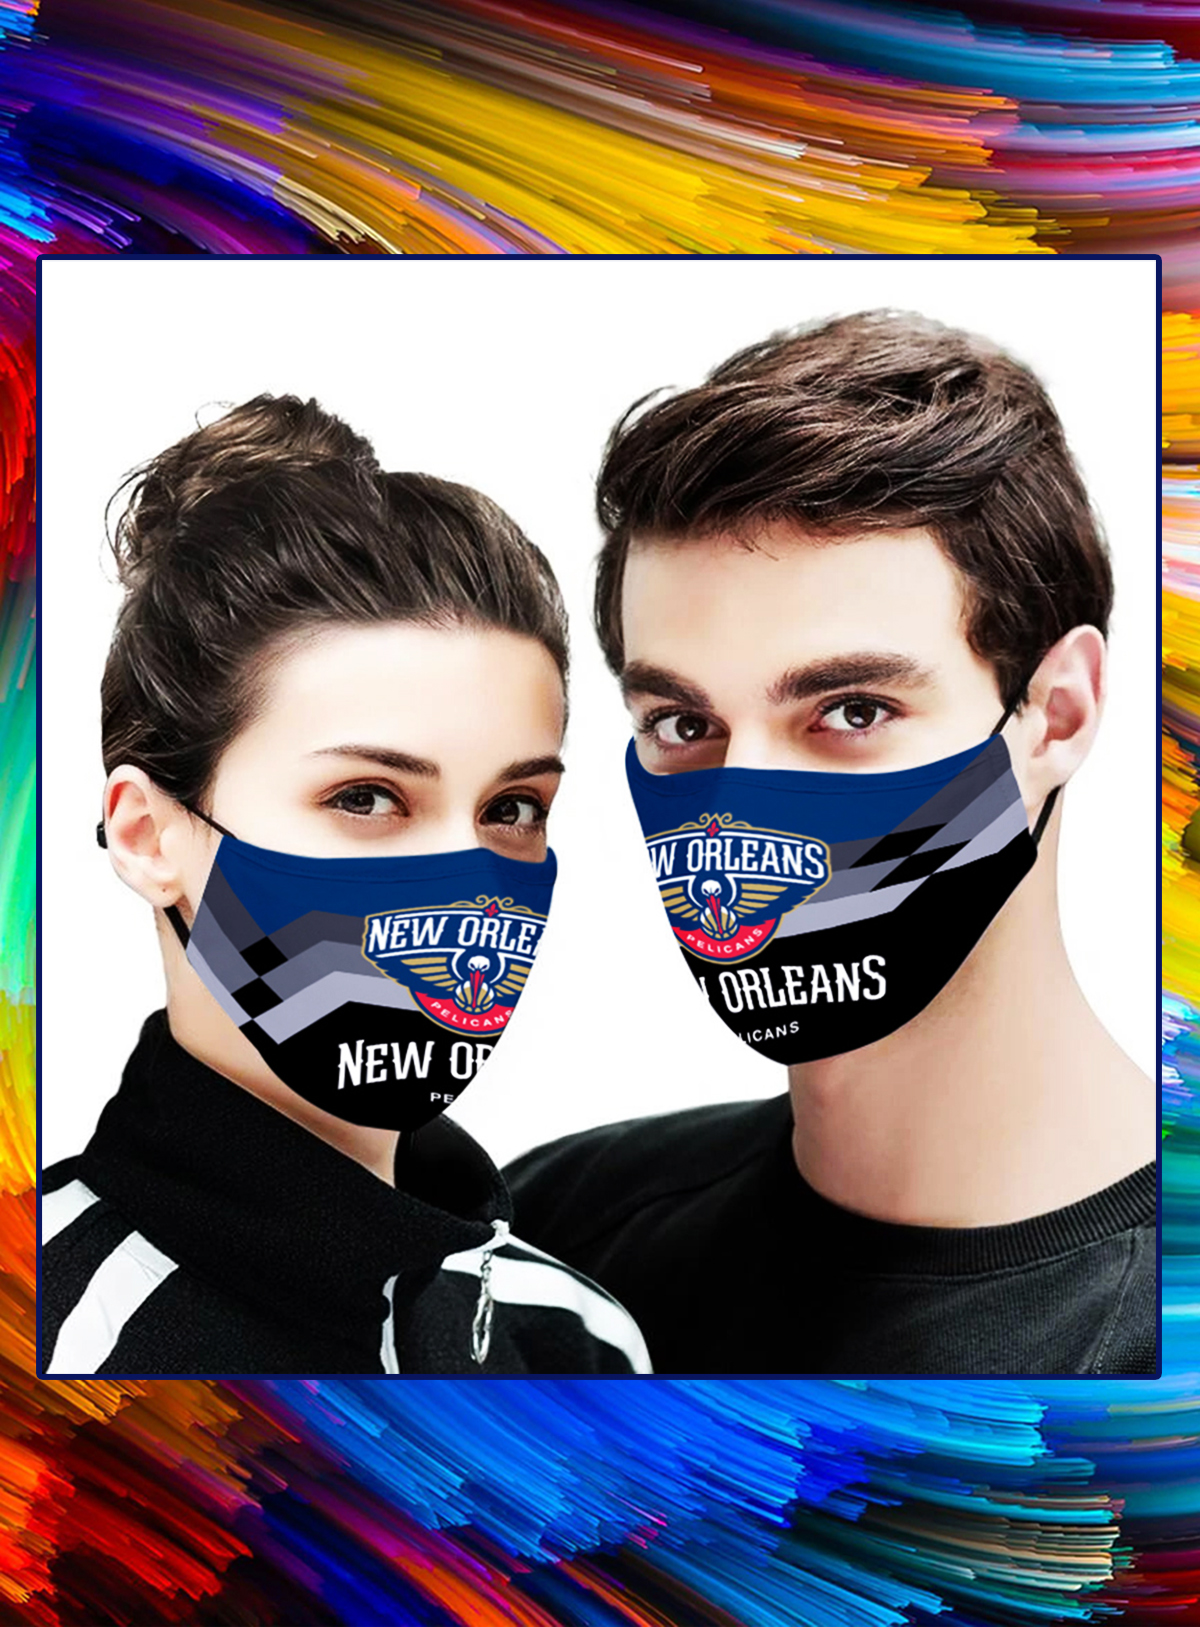 New Orleans Pelicans NBA face mask - Picture 1